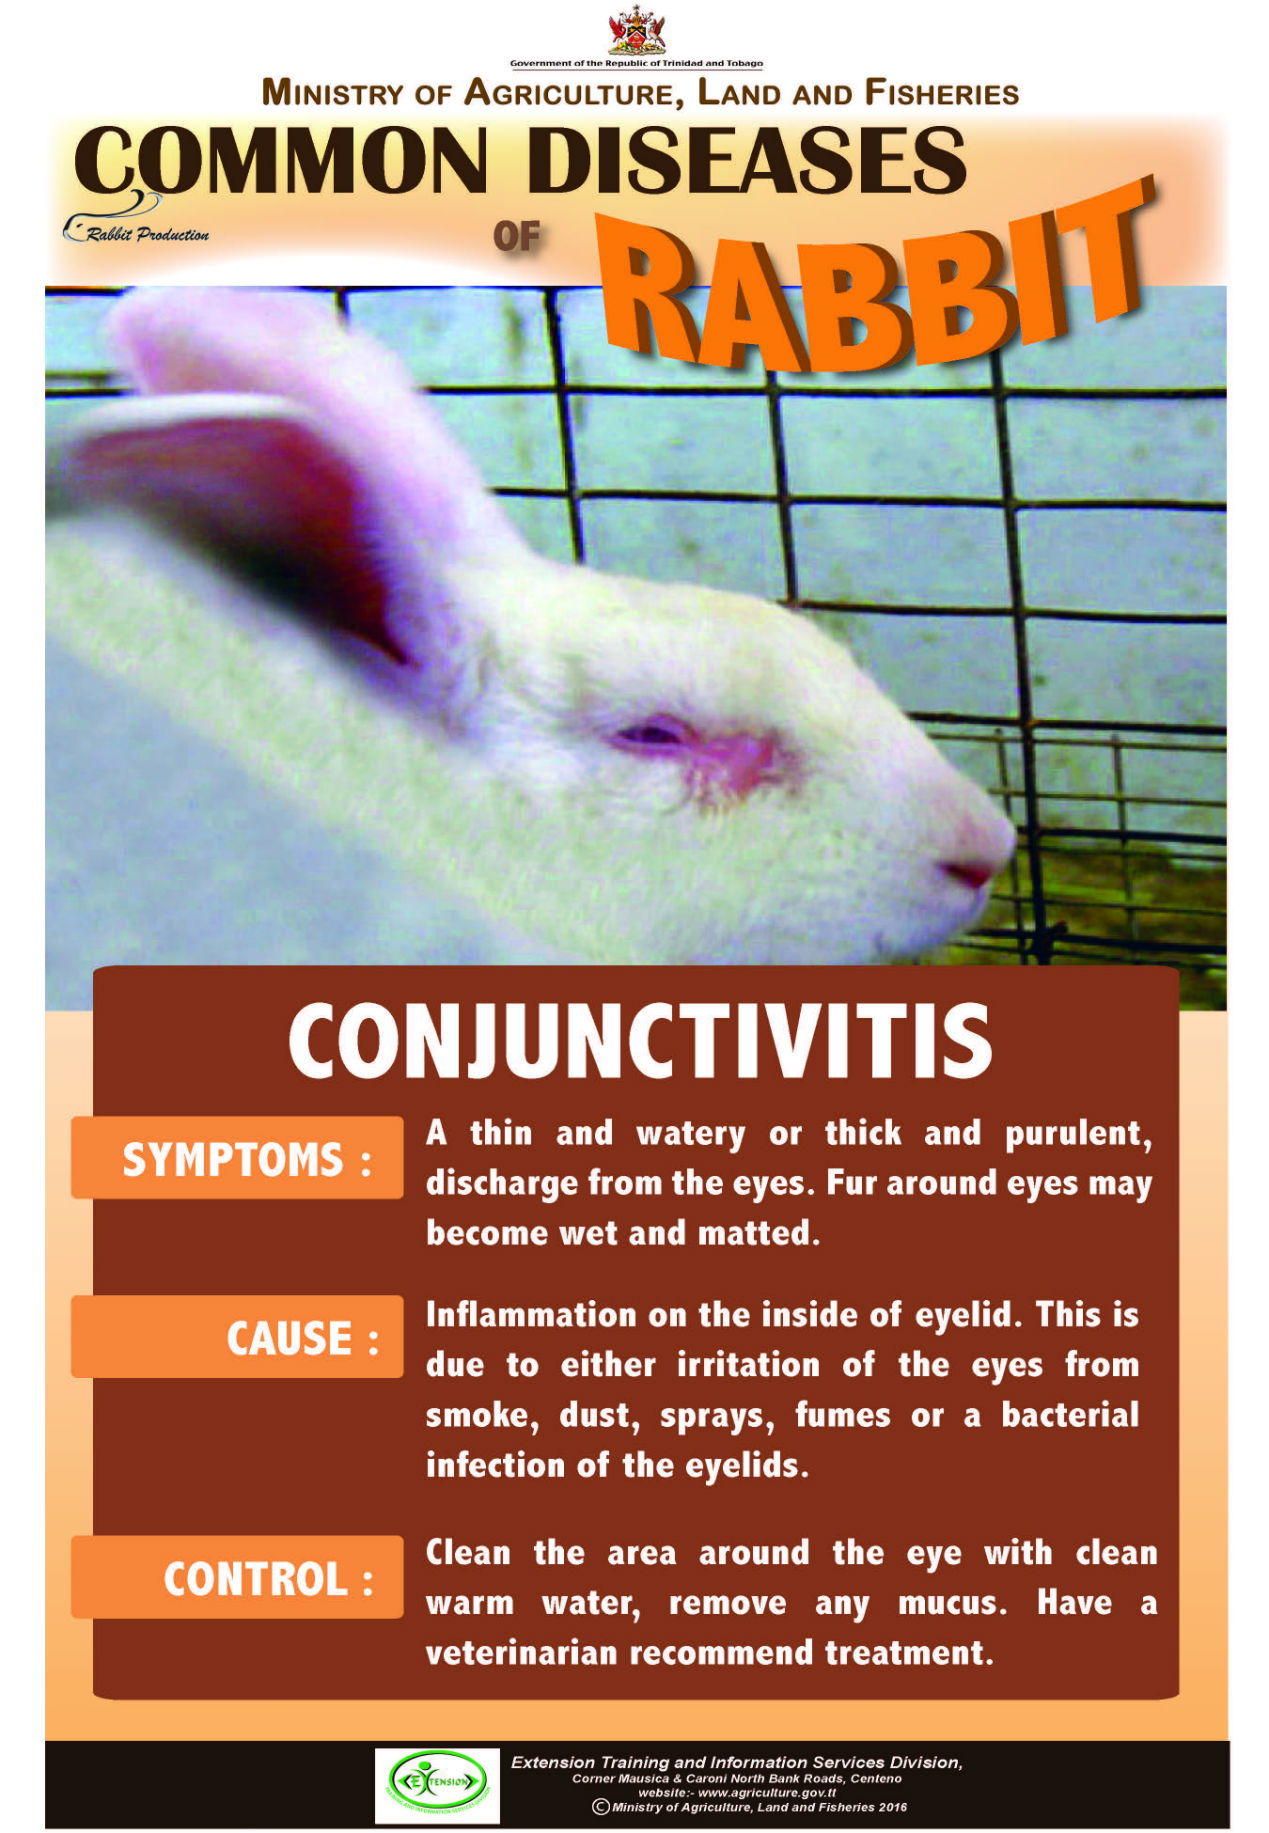 20 Common diseases of rabbits – CONJUNCTIVITIS   Ministry of ...